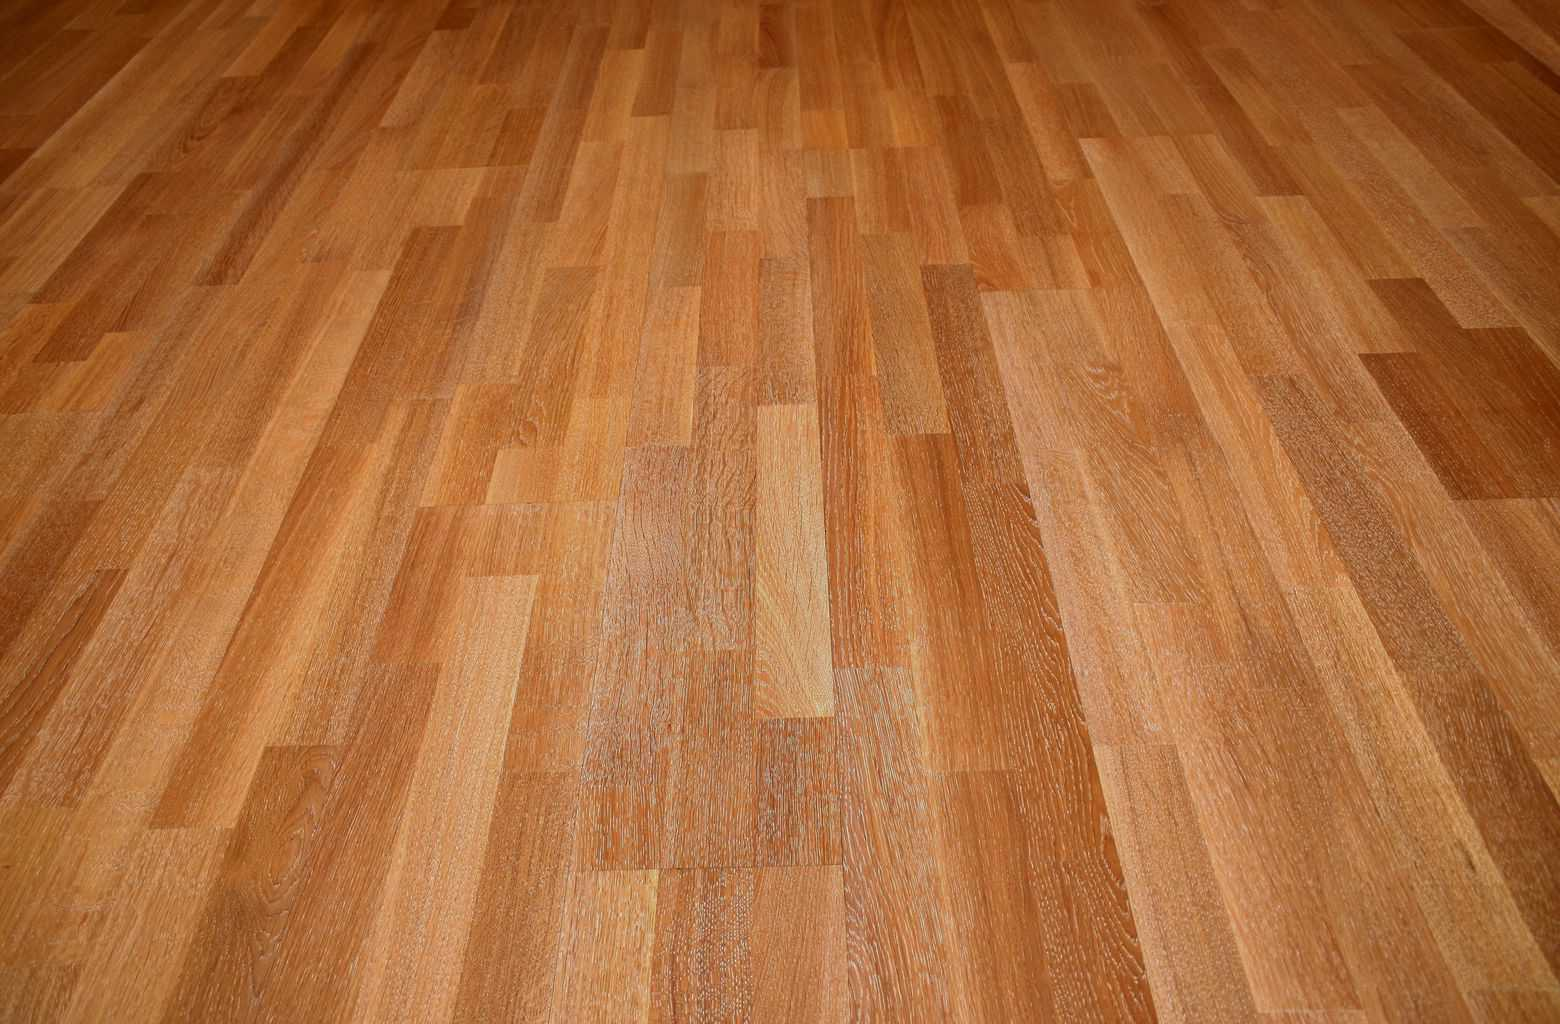 Types Of Laminate Flooring Options Oak Walnut Pine